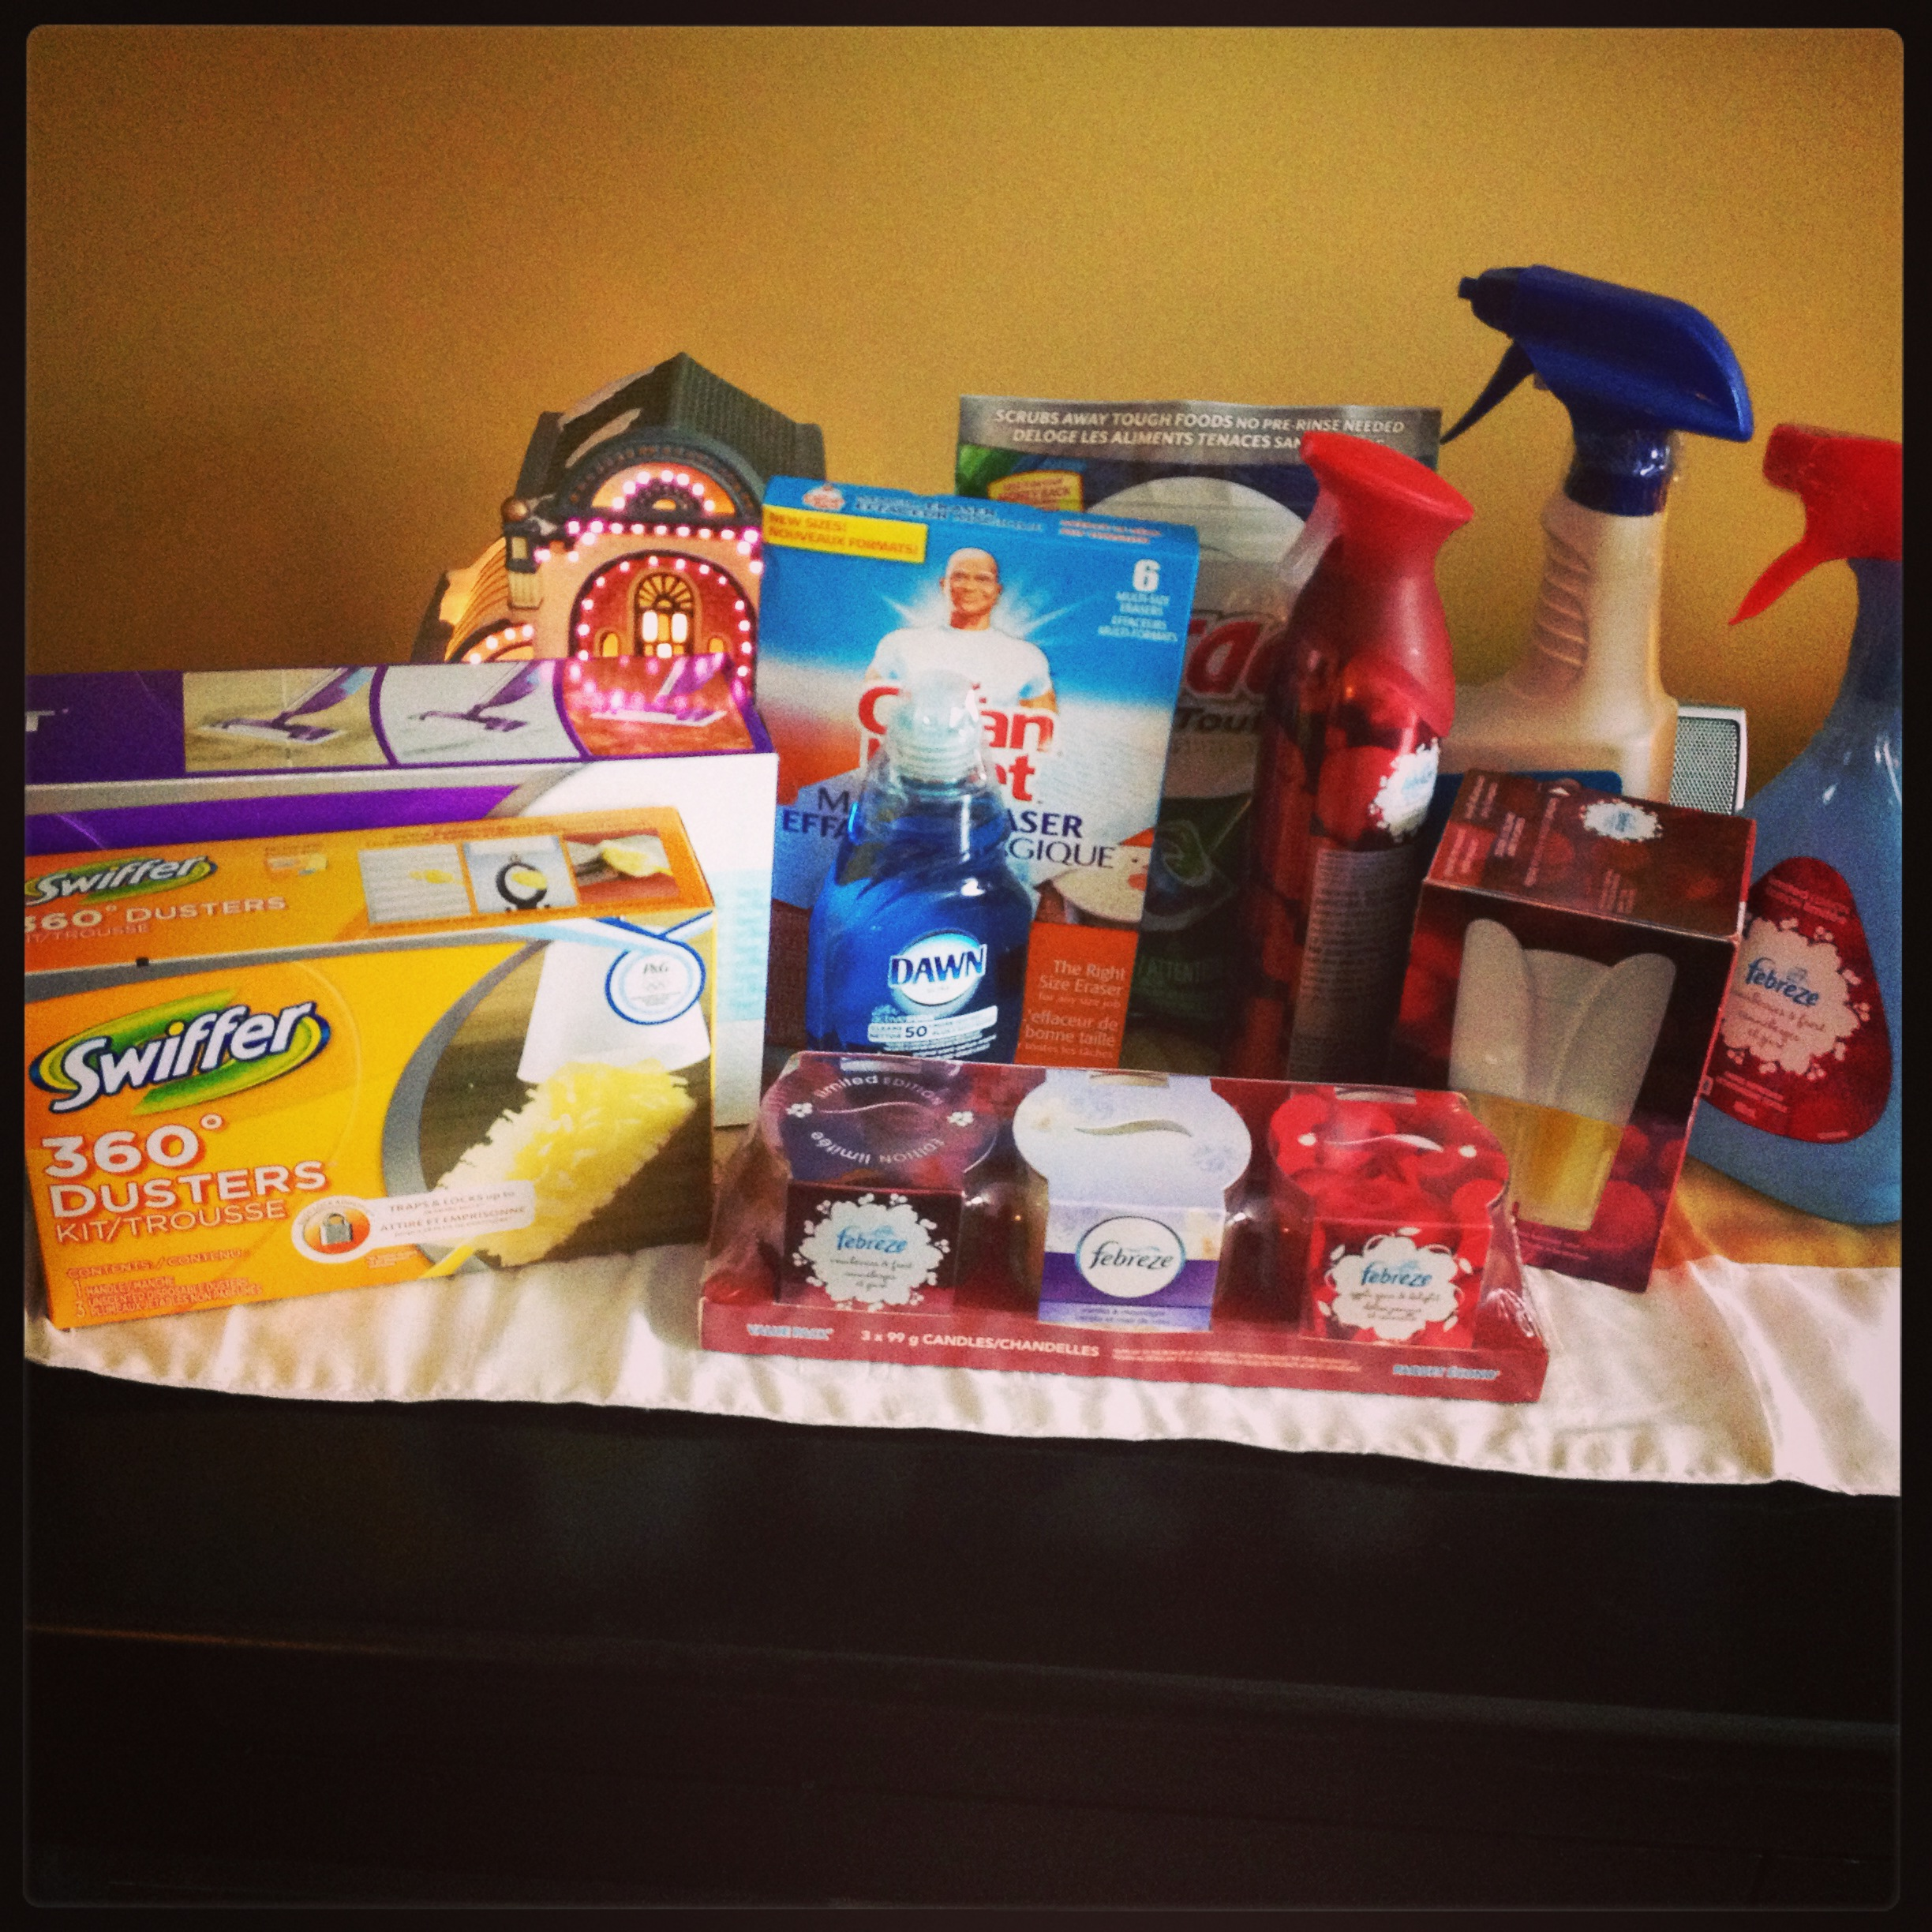 P&G Cleaning Prize Pack